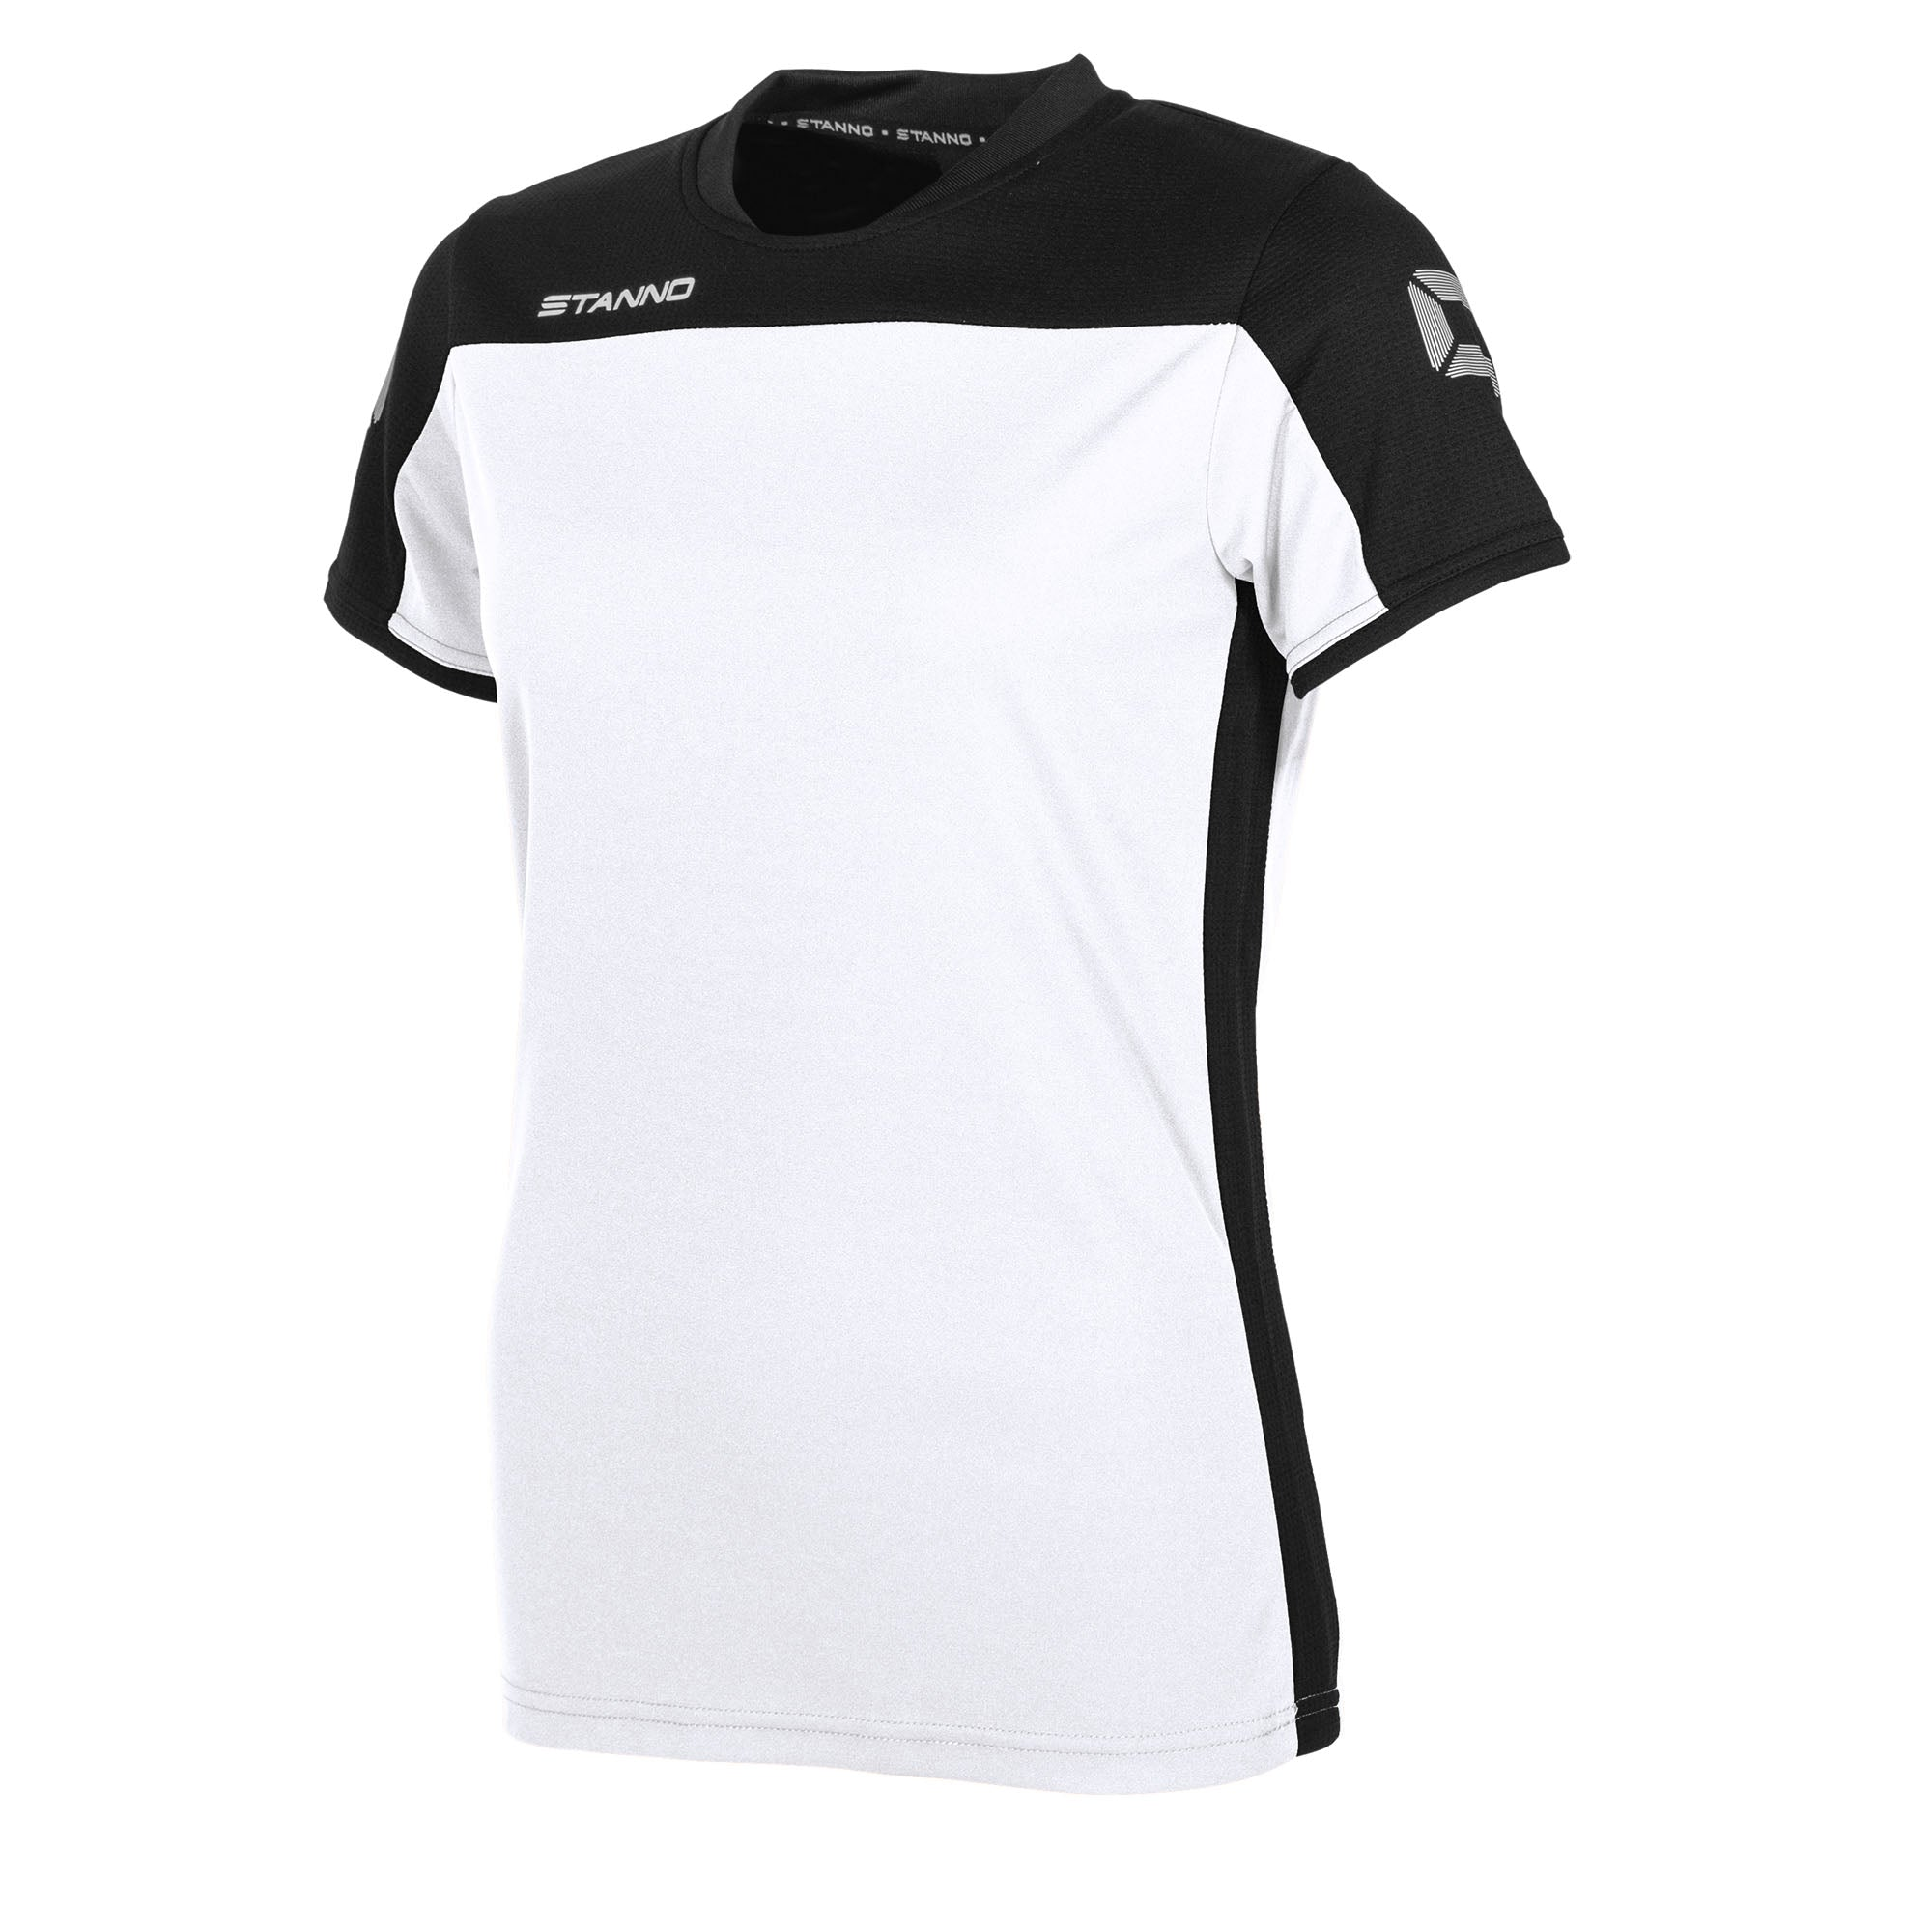 Stanno Pride ladies t-shirt in white, with mesh contrast black shoulder and side panel